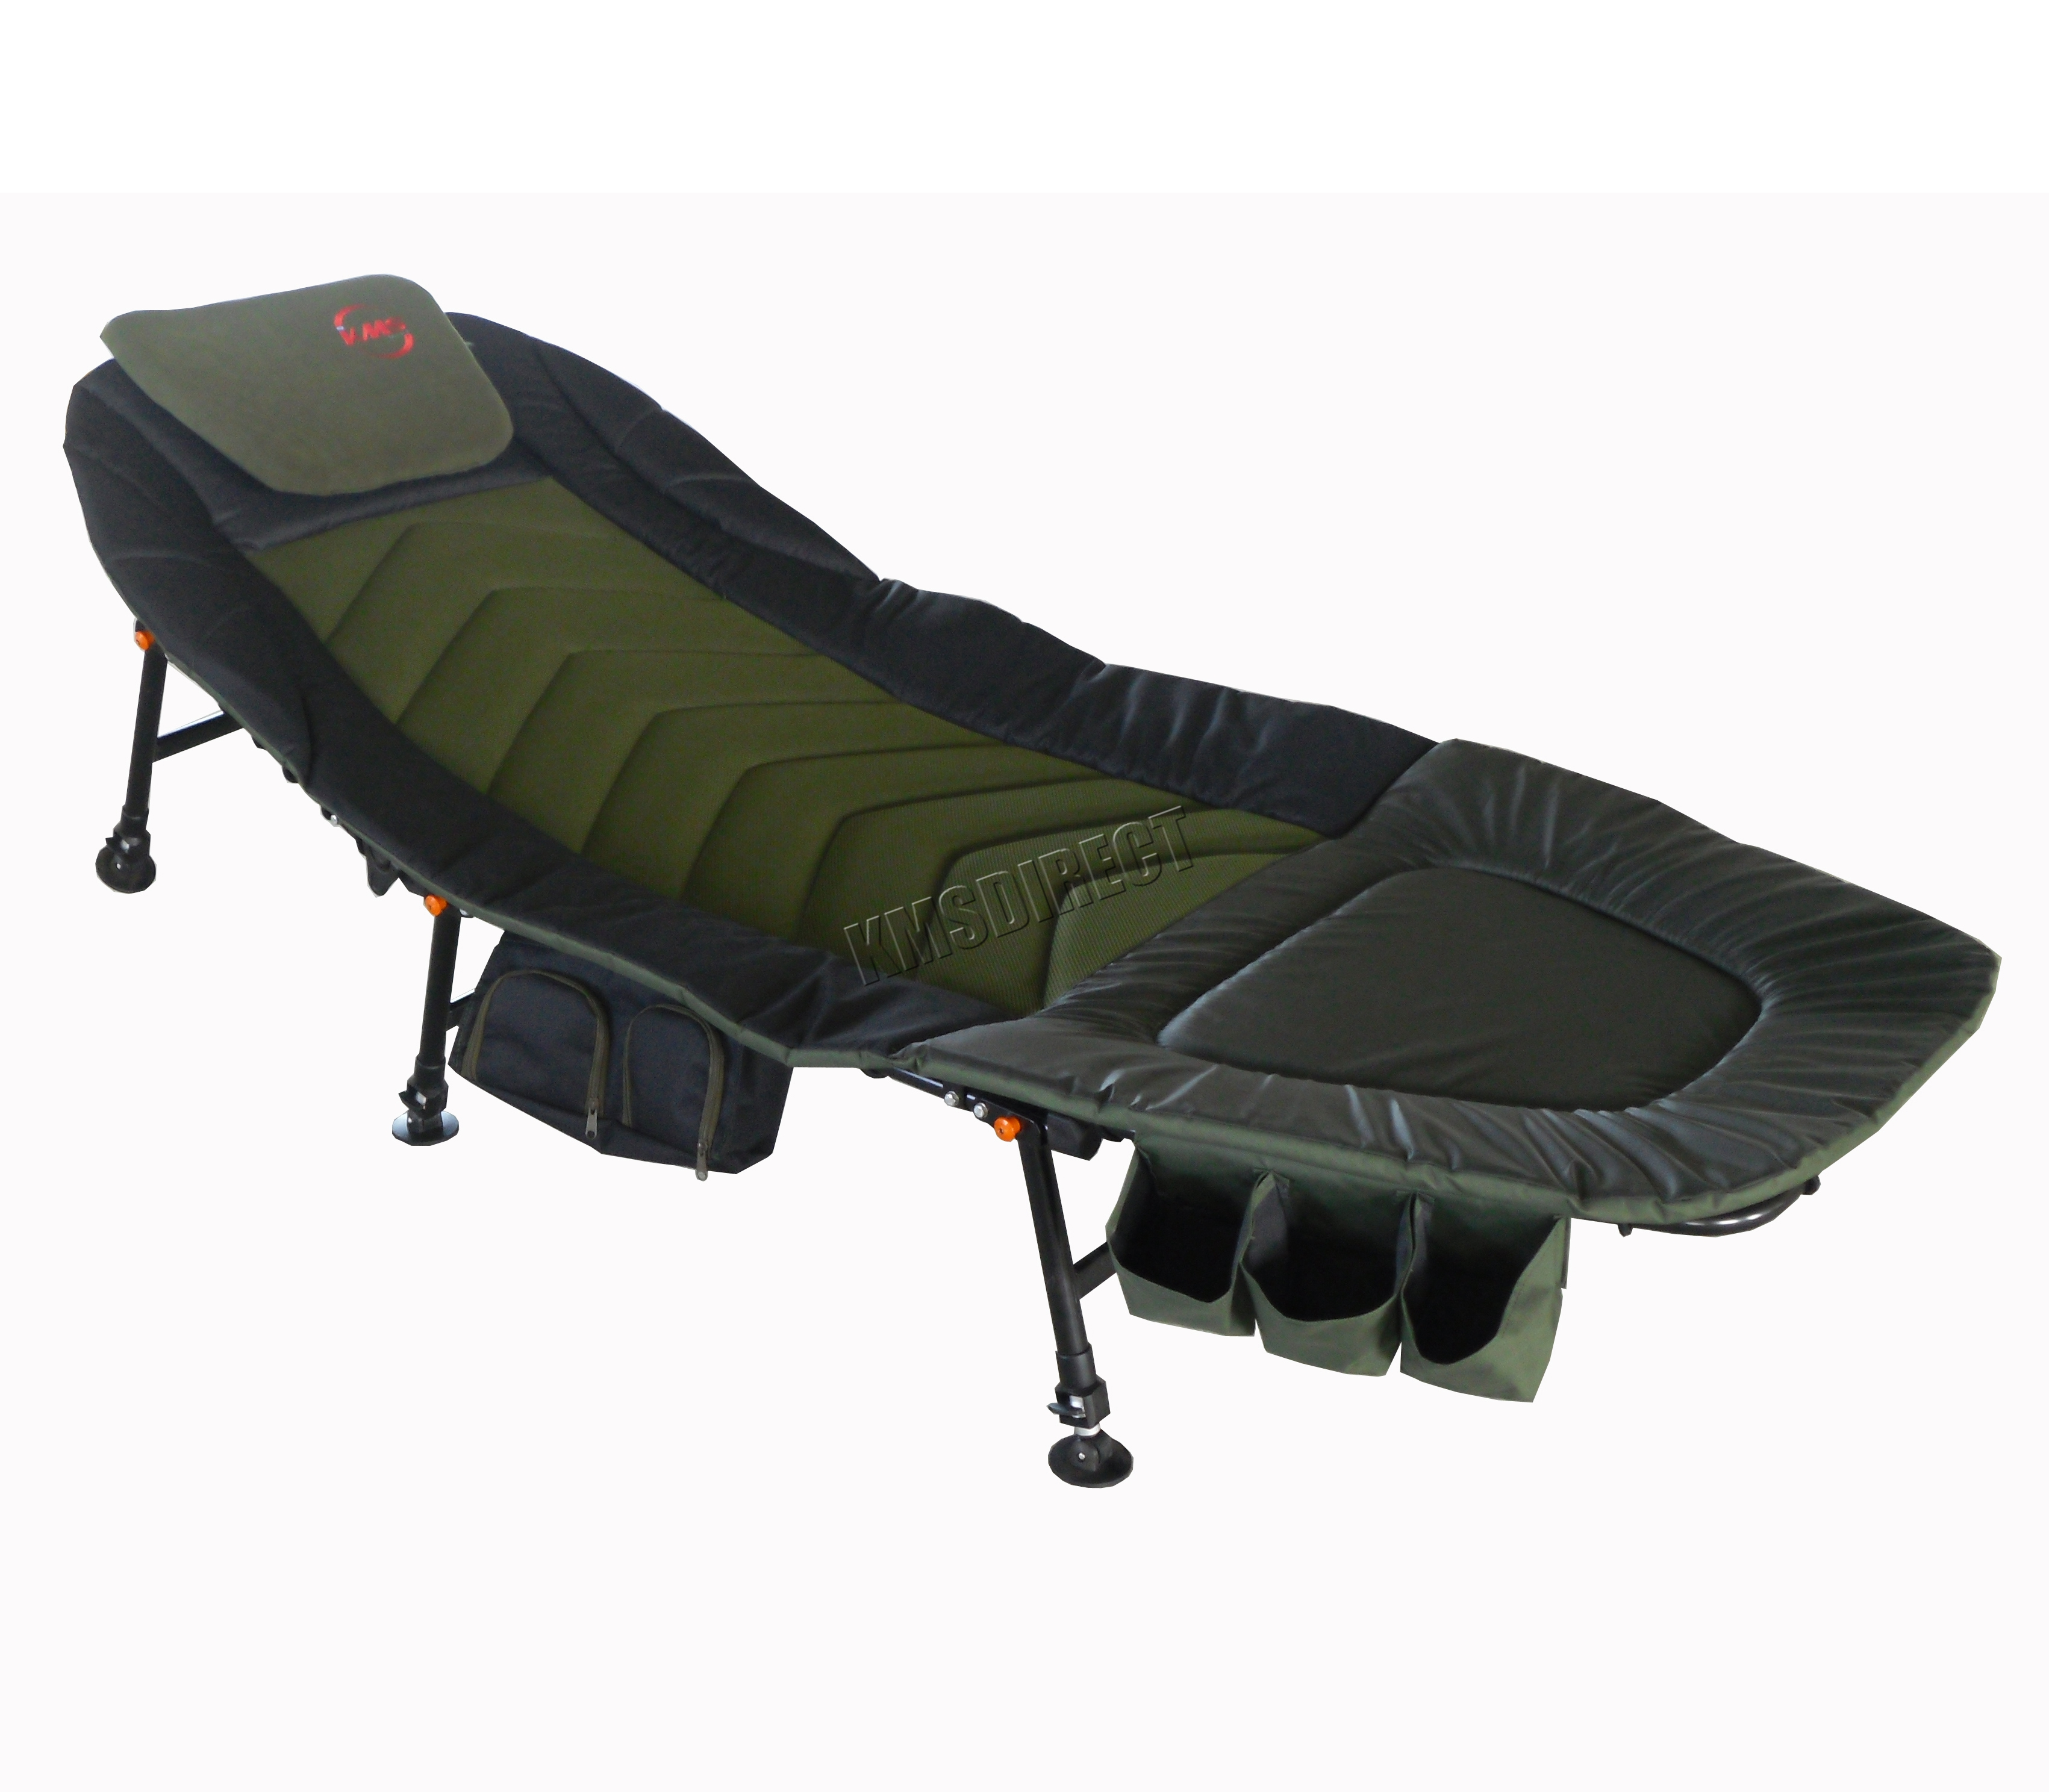 camping sofa uk italian design fishing bed chair bedchair 6 adjustable legs tool